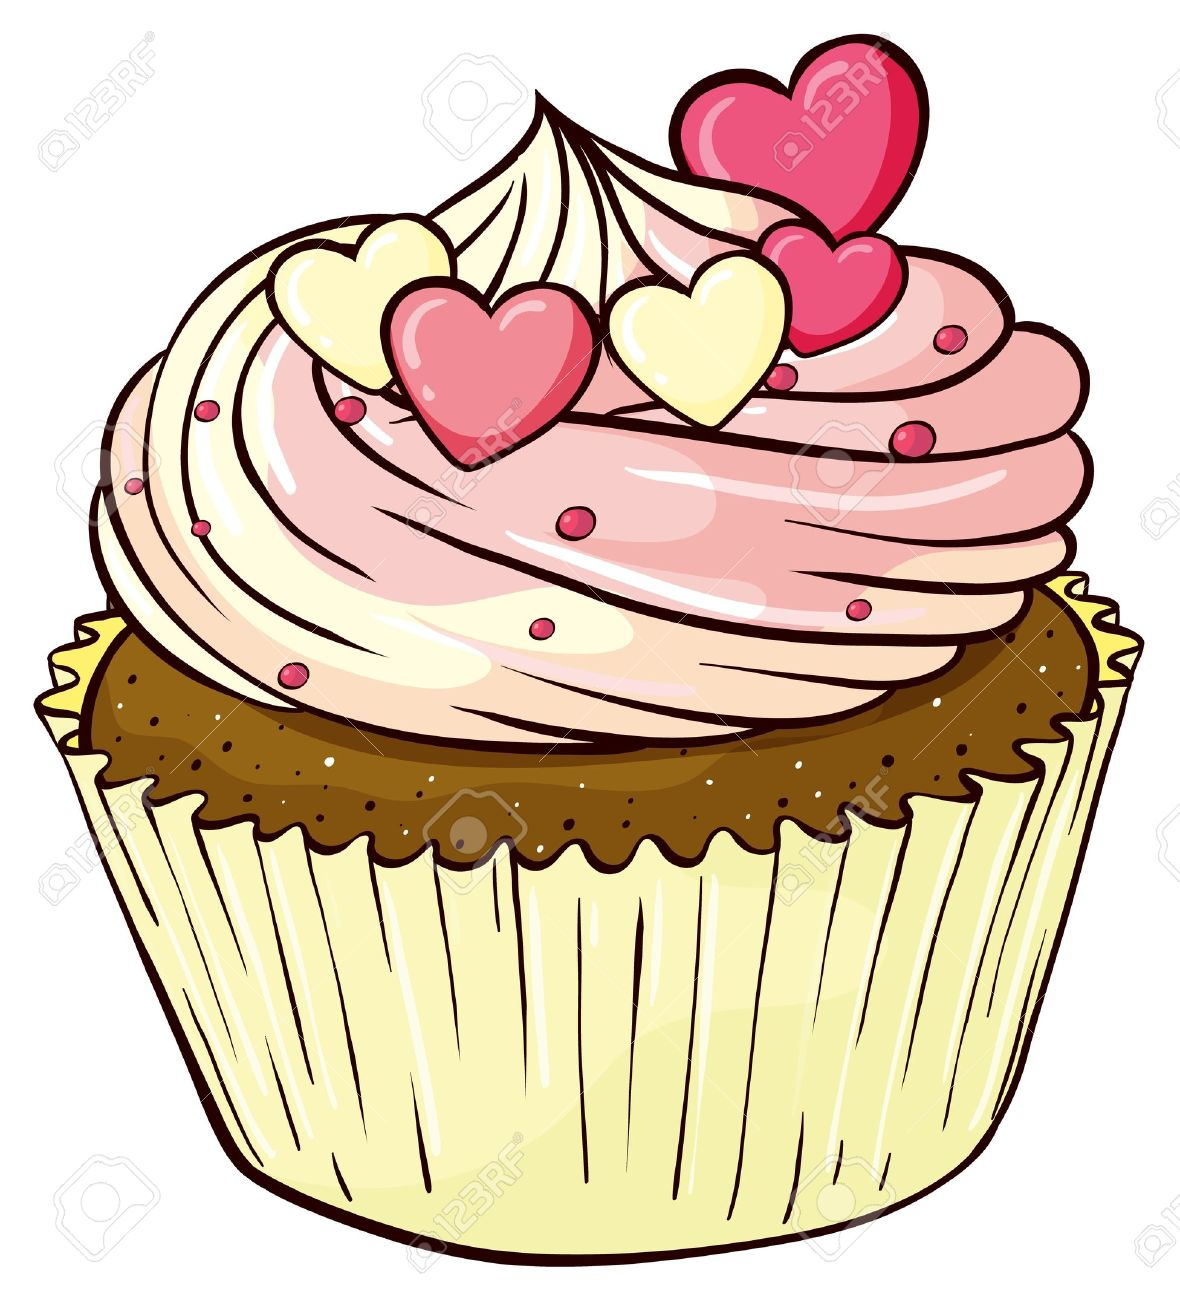 cupcake cartoon stock photos royalty free cupcake cartoon images rh 123rf com funny cartoon cupcake pictures cartoon cupcake pictures